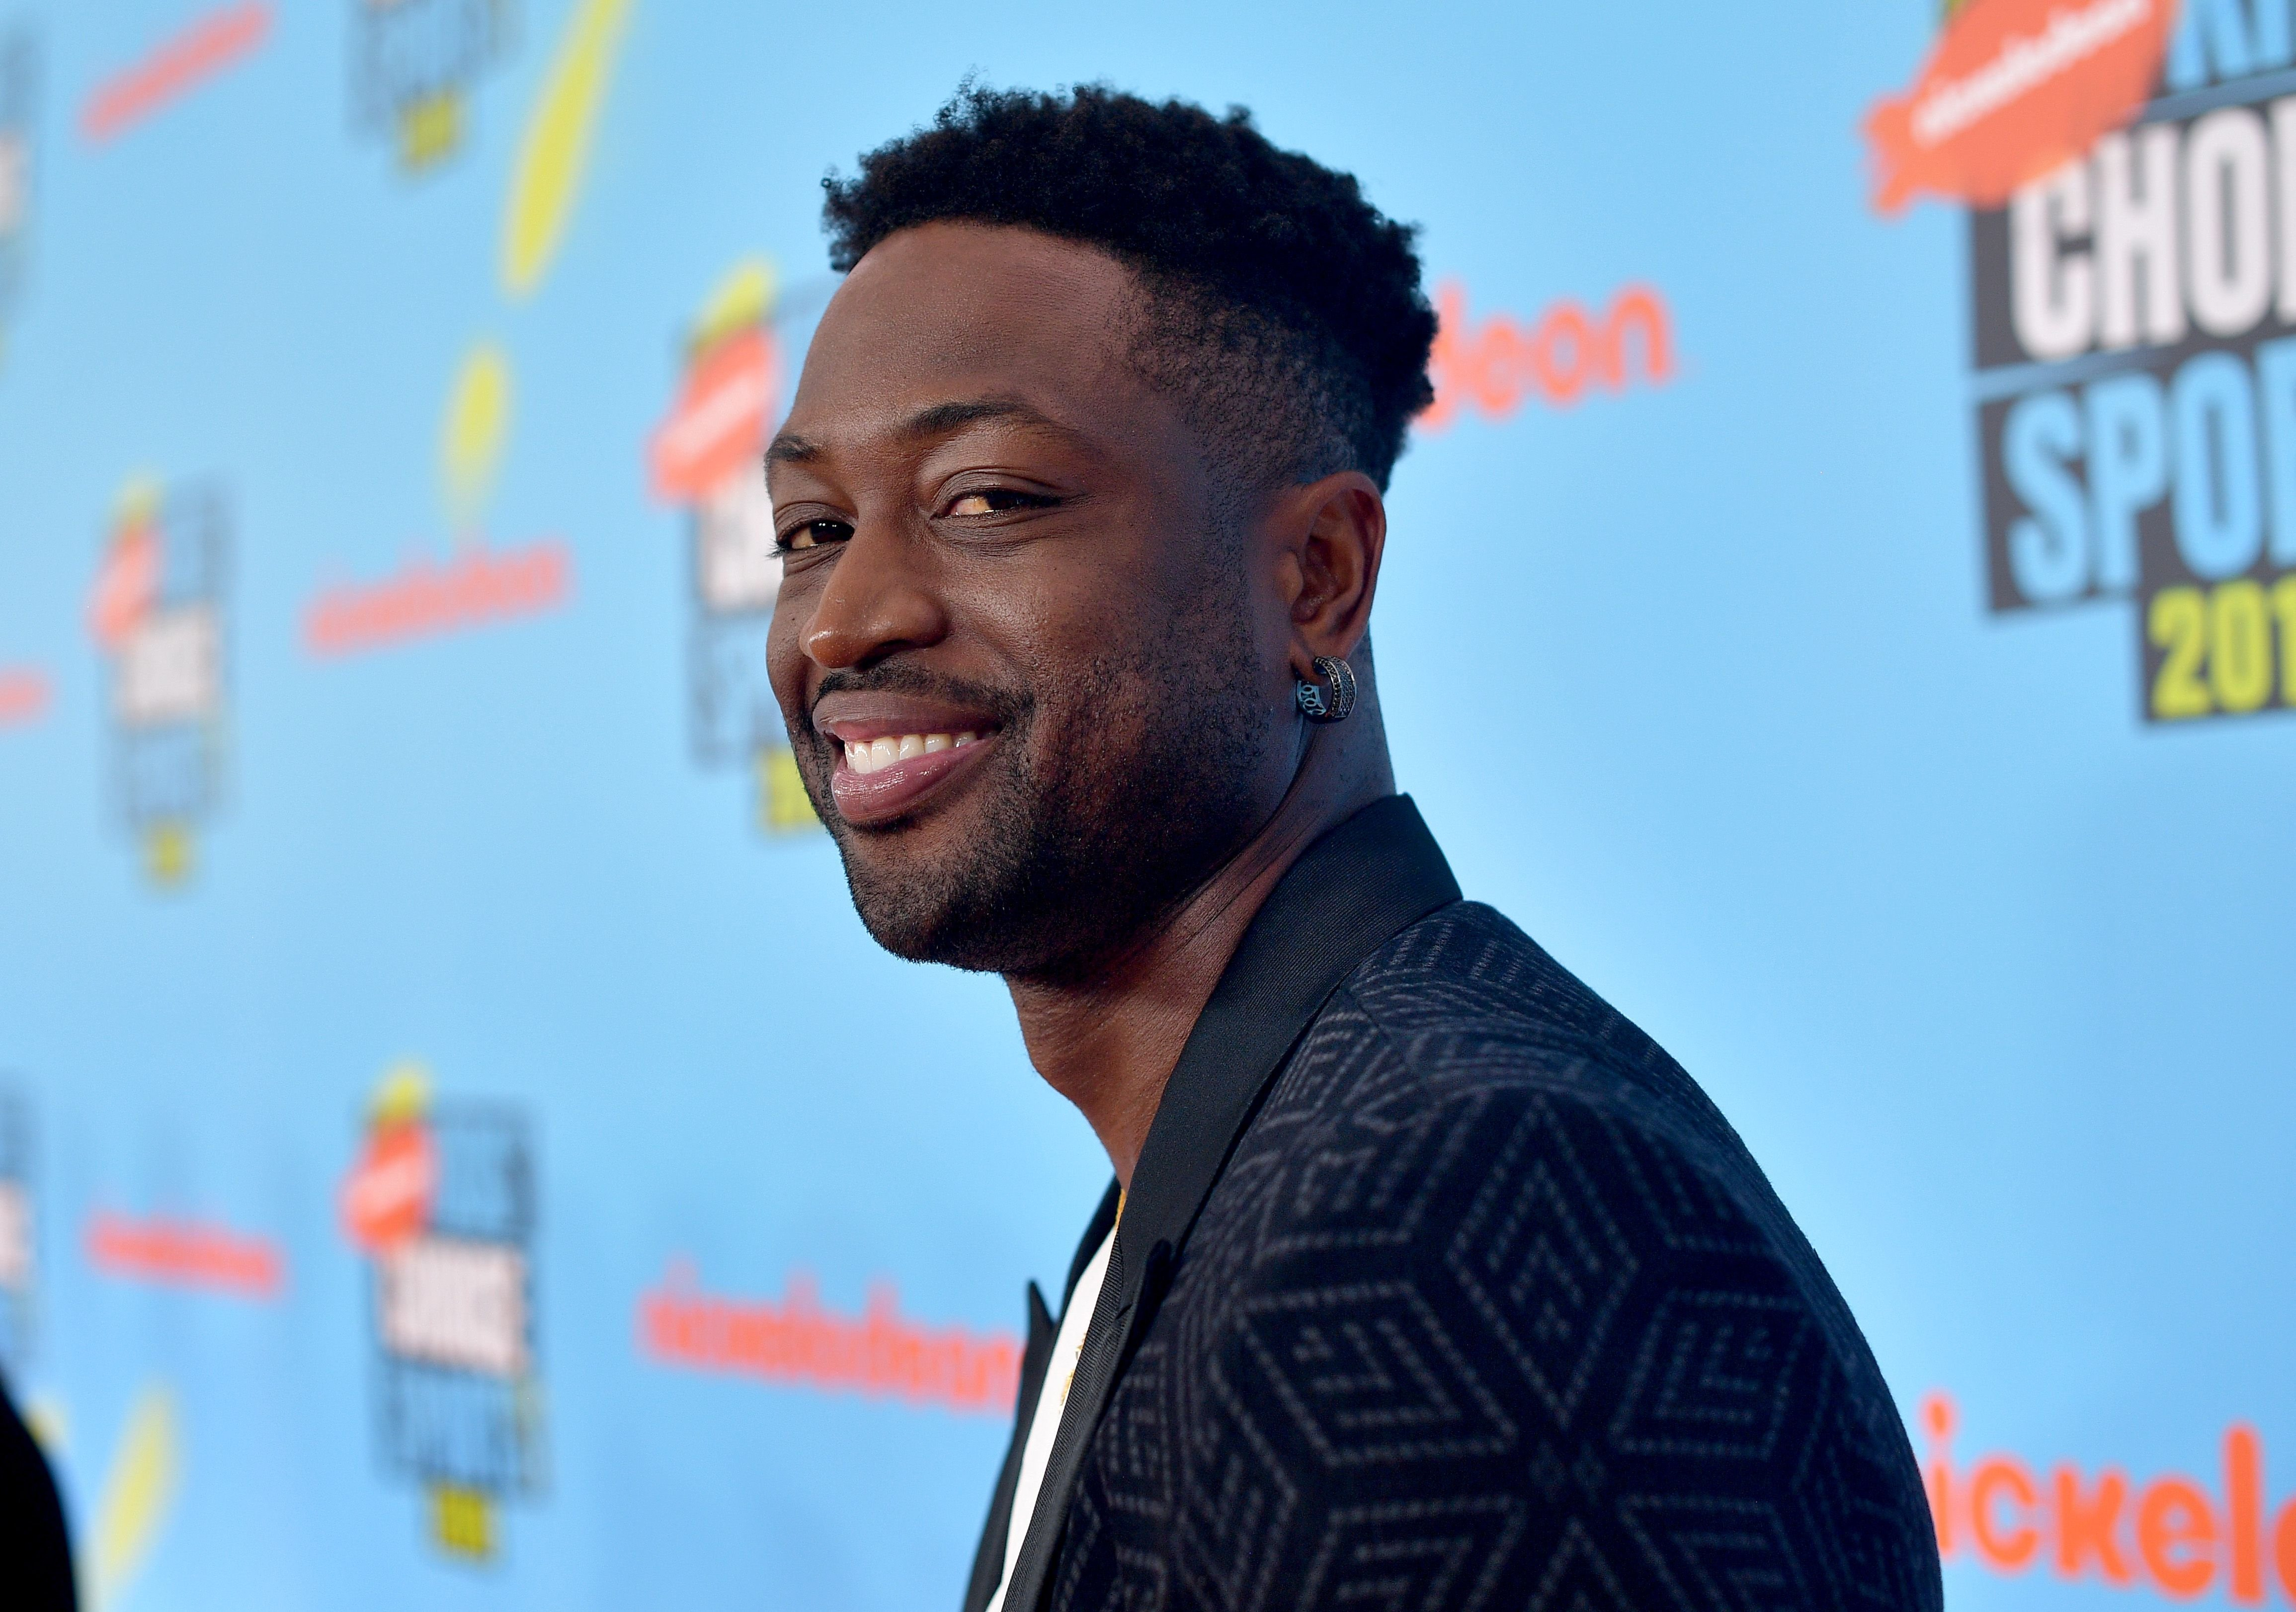 Dwayne Wade at Nickelodeon Kid's Choice Sports on July 11, 2019 in Santa Monica. | Photo: Getty Images